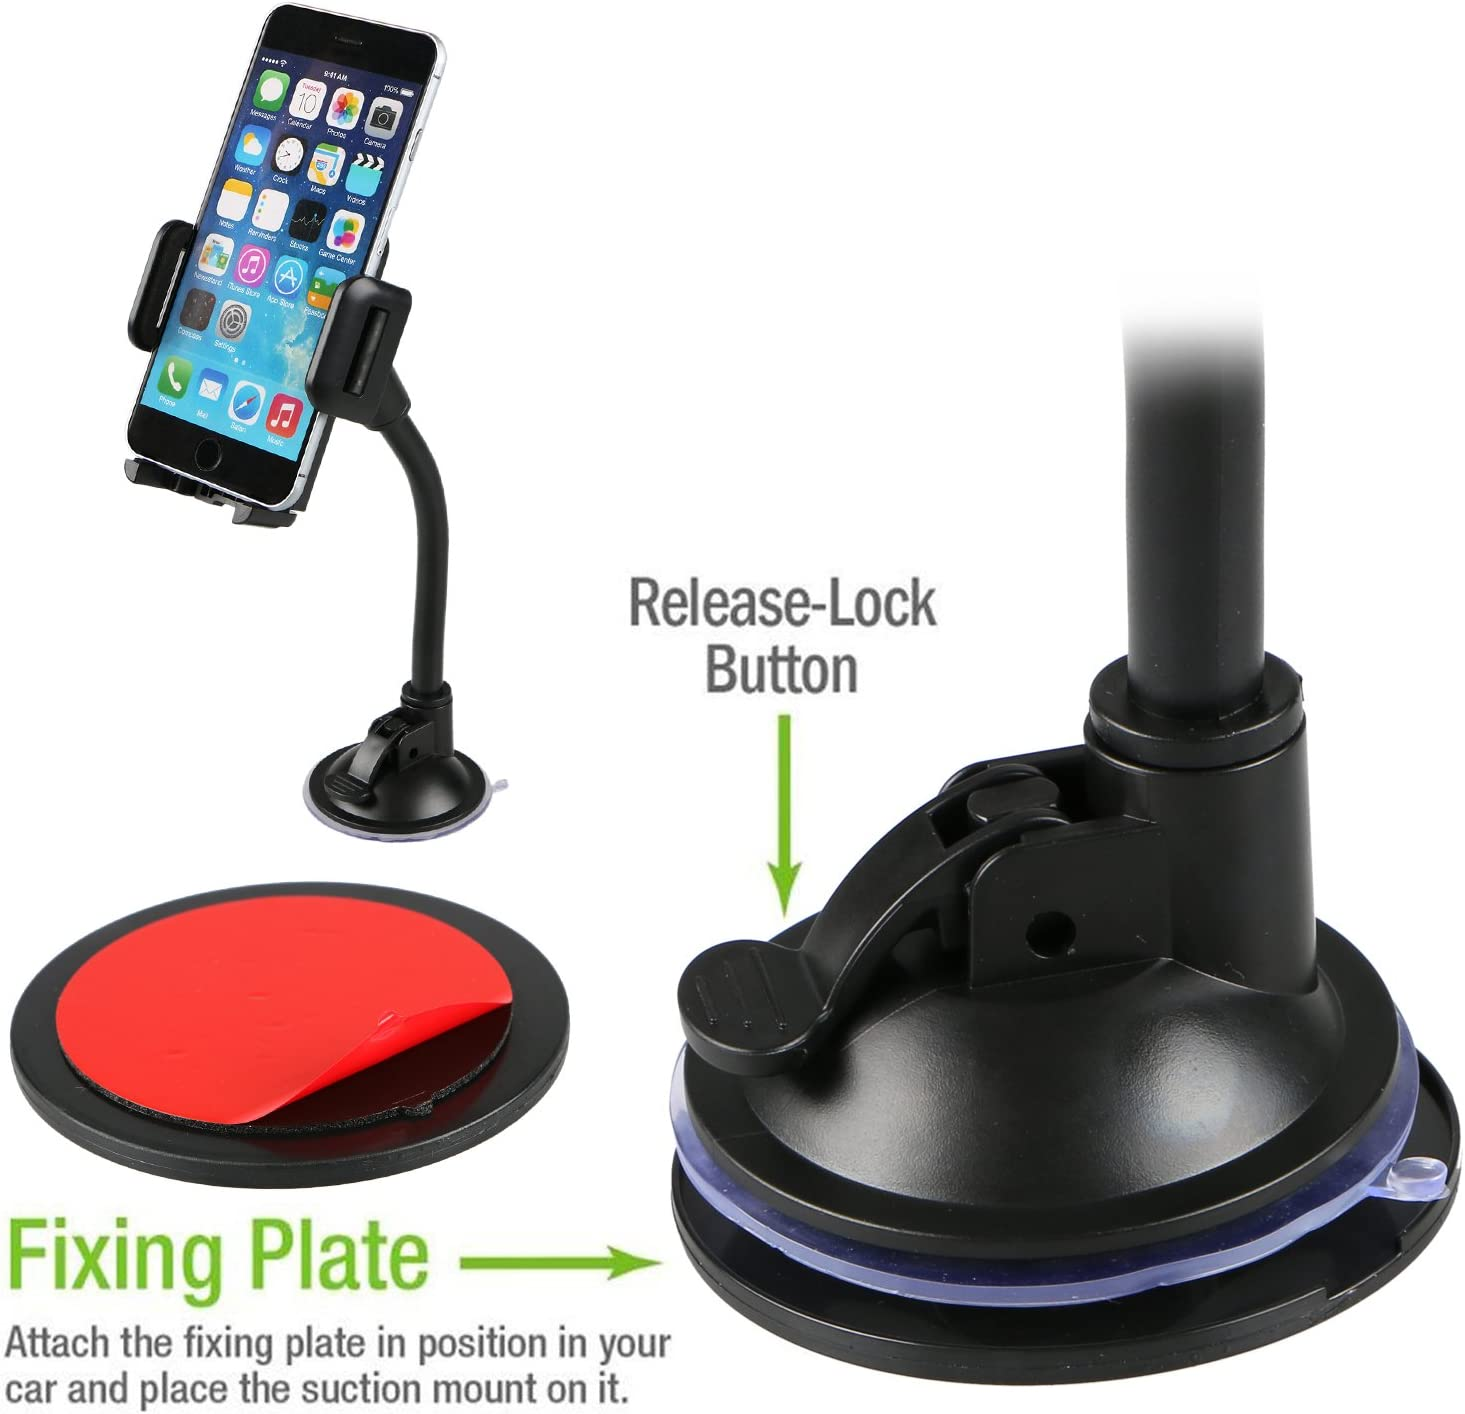 Linkstyle Car Mount Phone Holder with Long Arm Universal Windshield Dashboard Mount with Clip /& Suction Cup Cell Phone Holder for iPhone X 8 8 Plus 7 7 Plus 6 Plus Galaxy S5 S6 S7 S8 Google LG Huawei